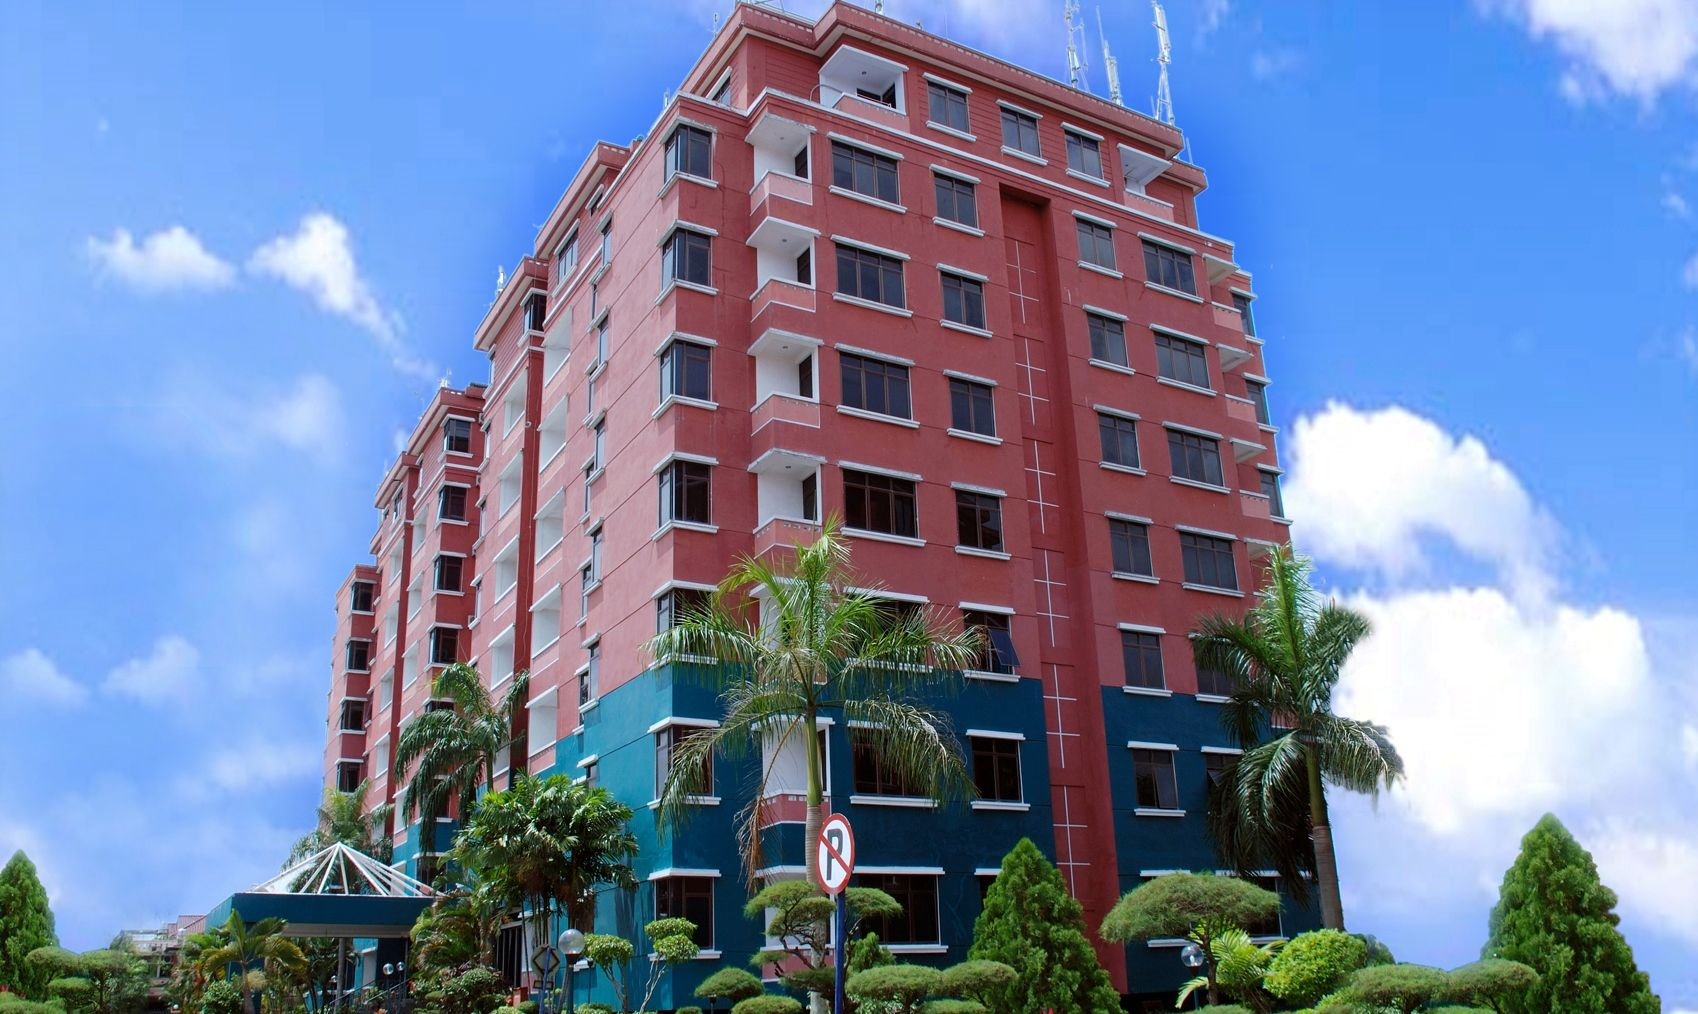 Sejahtera Family Hotel and Apartment, Sleman